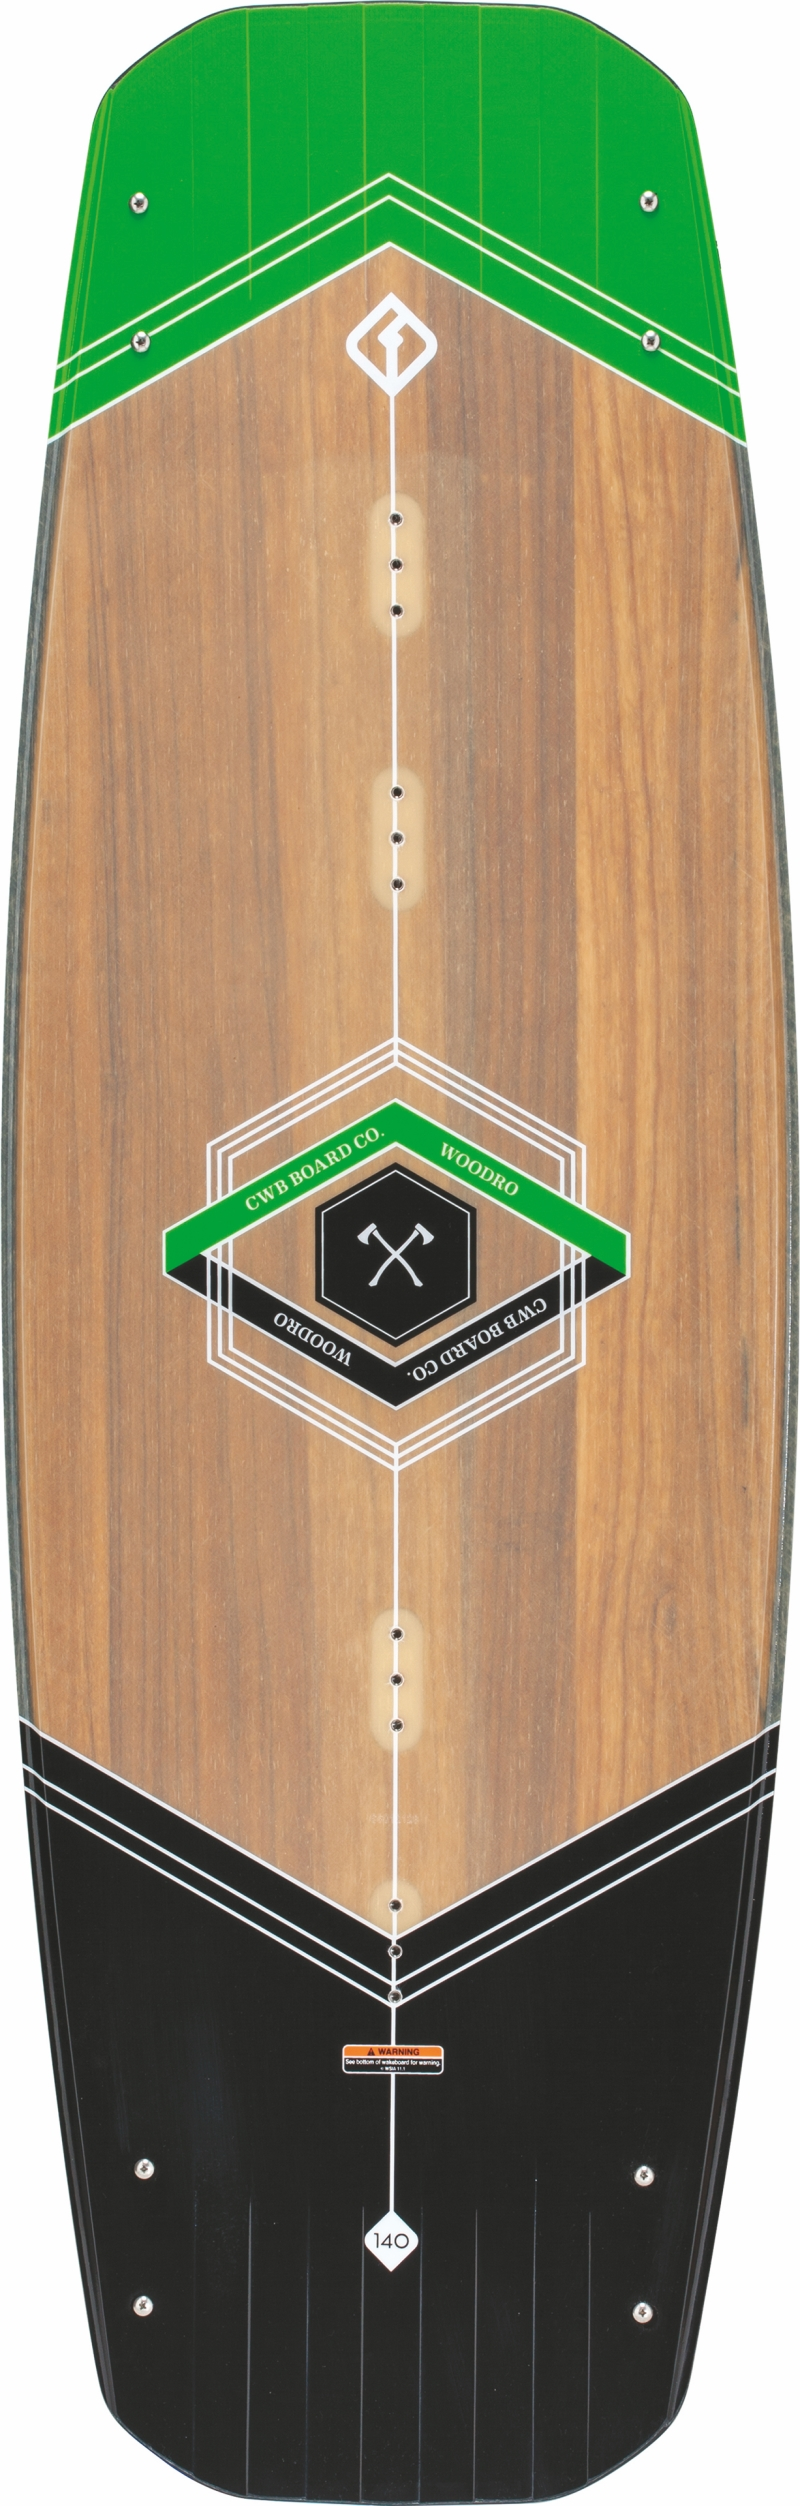 Вейкборд CWB WOODRO Wood-Black-Green